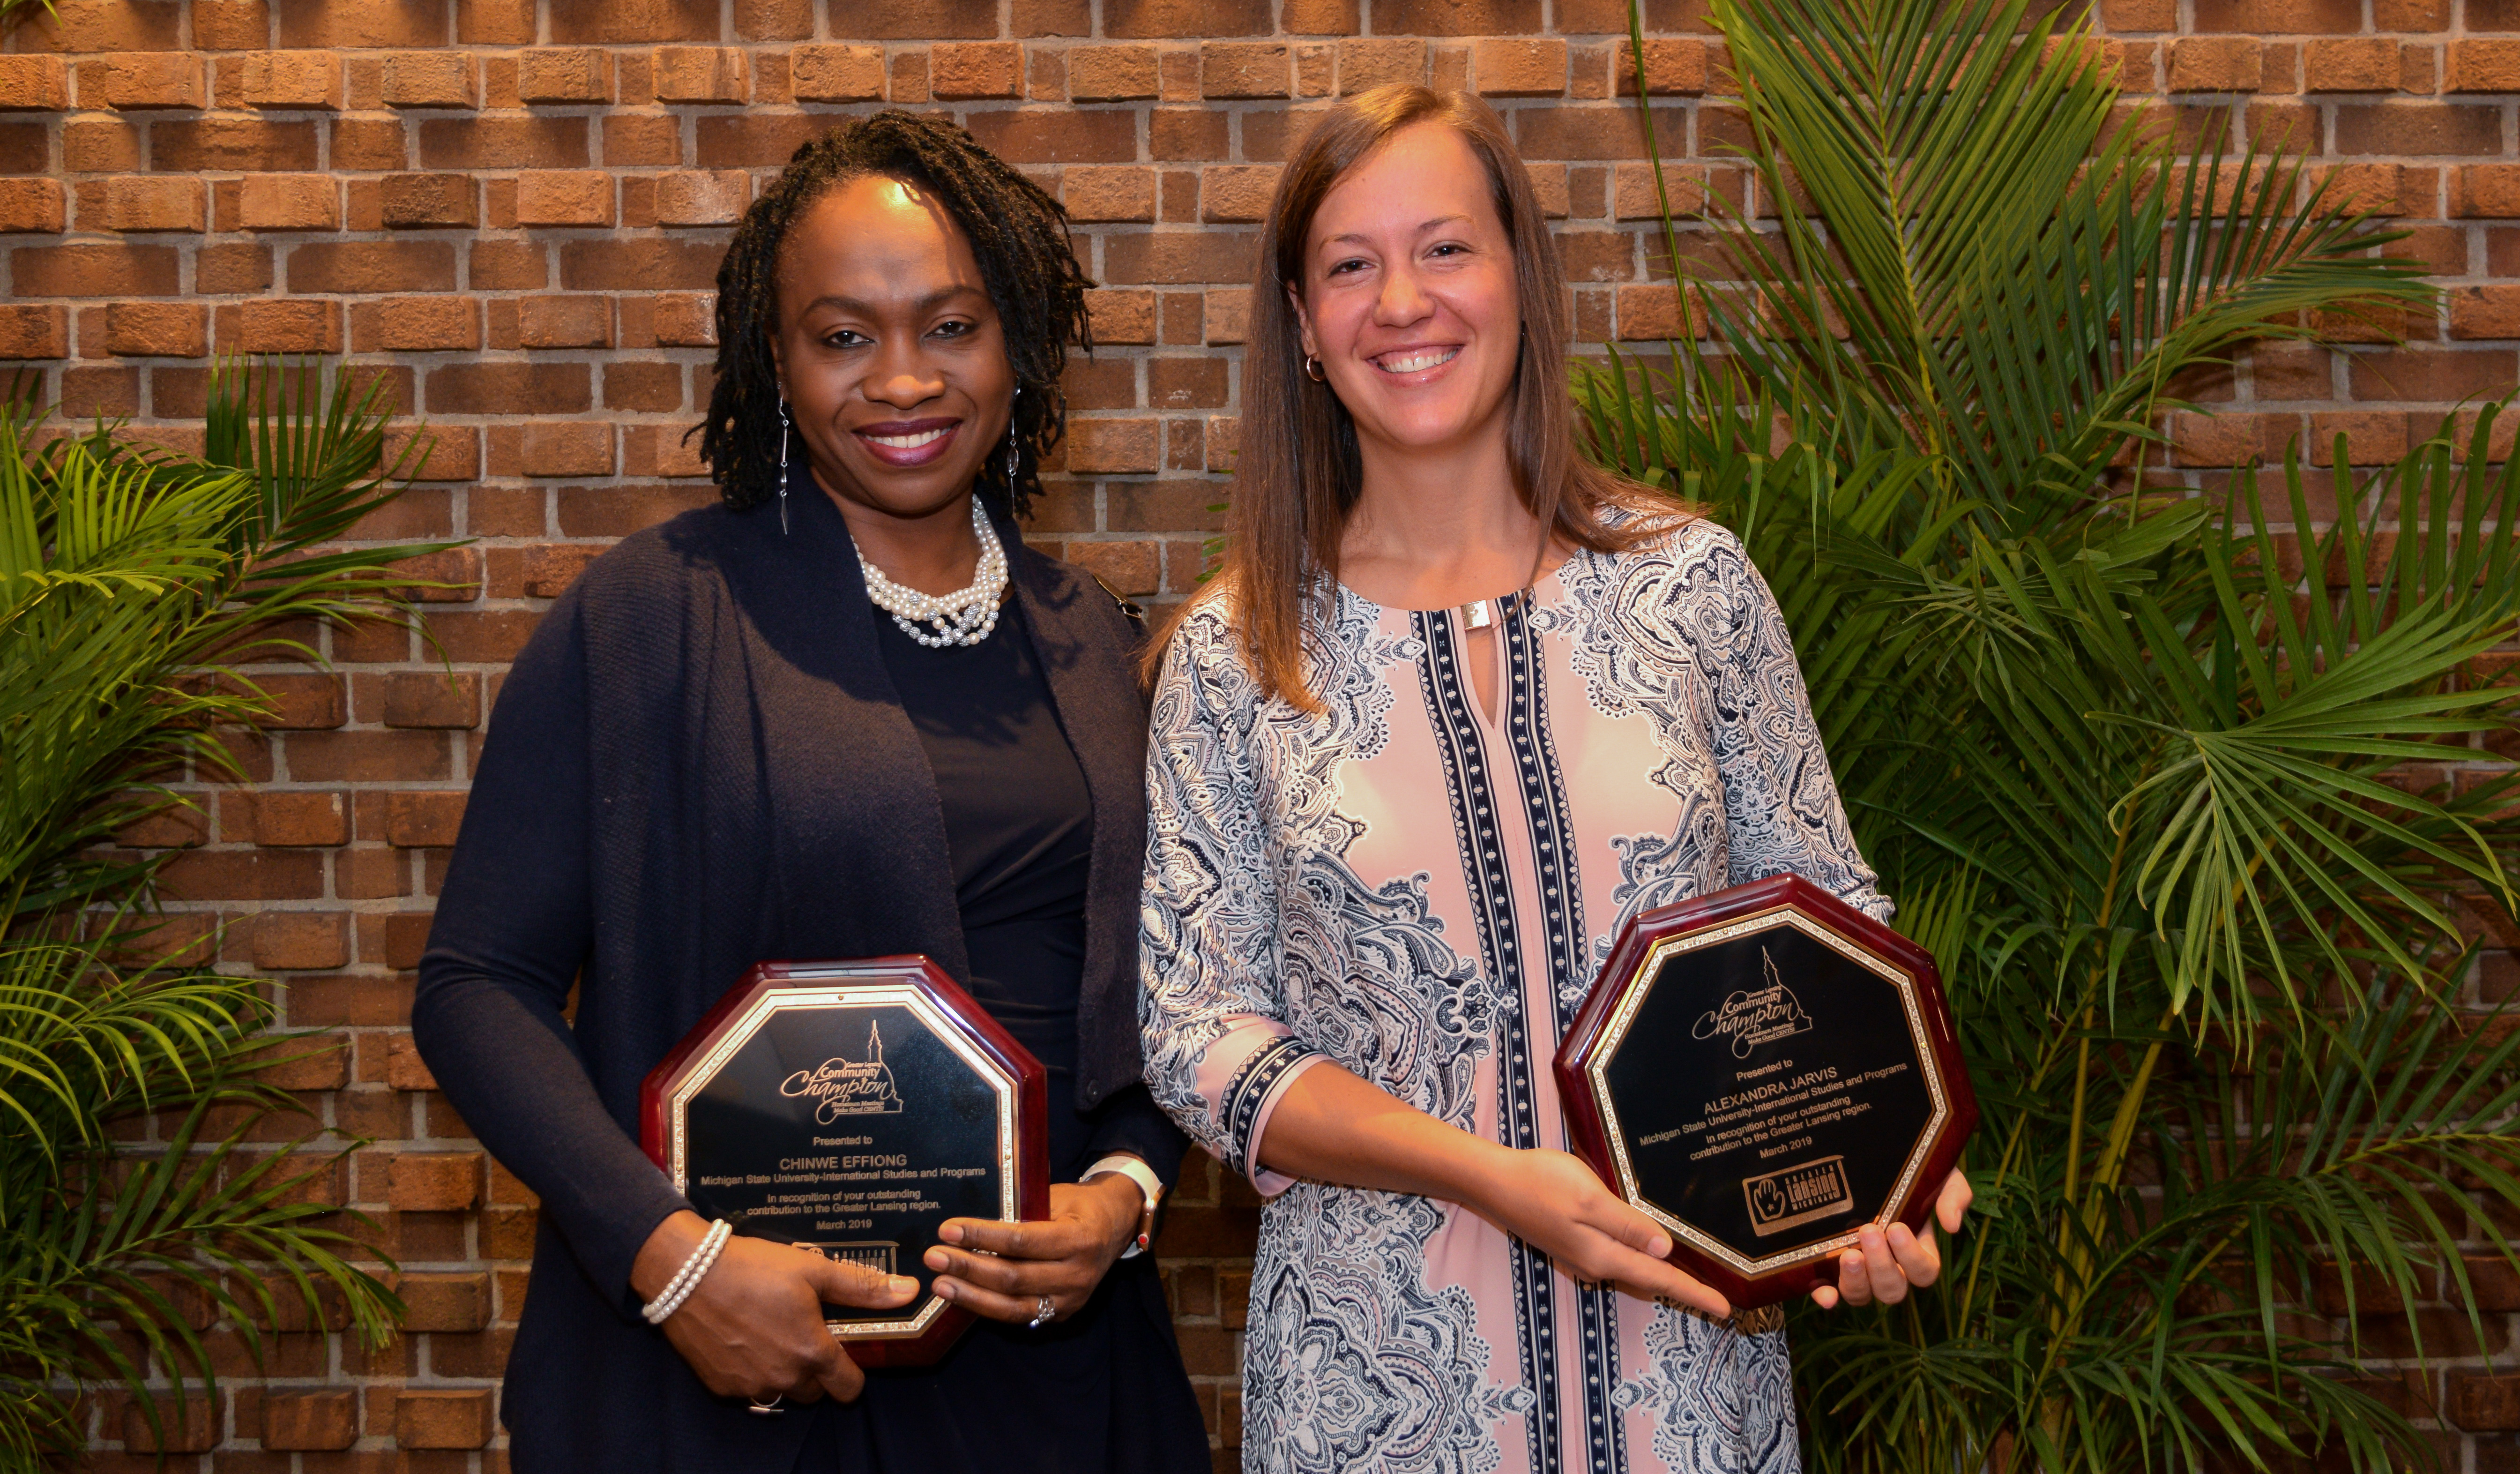 GYAN staff pictured with awards